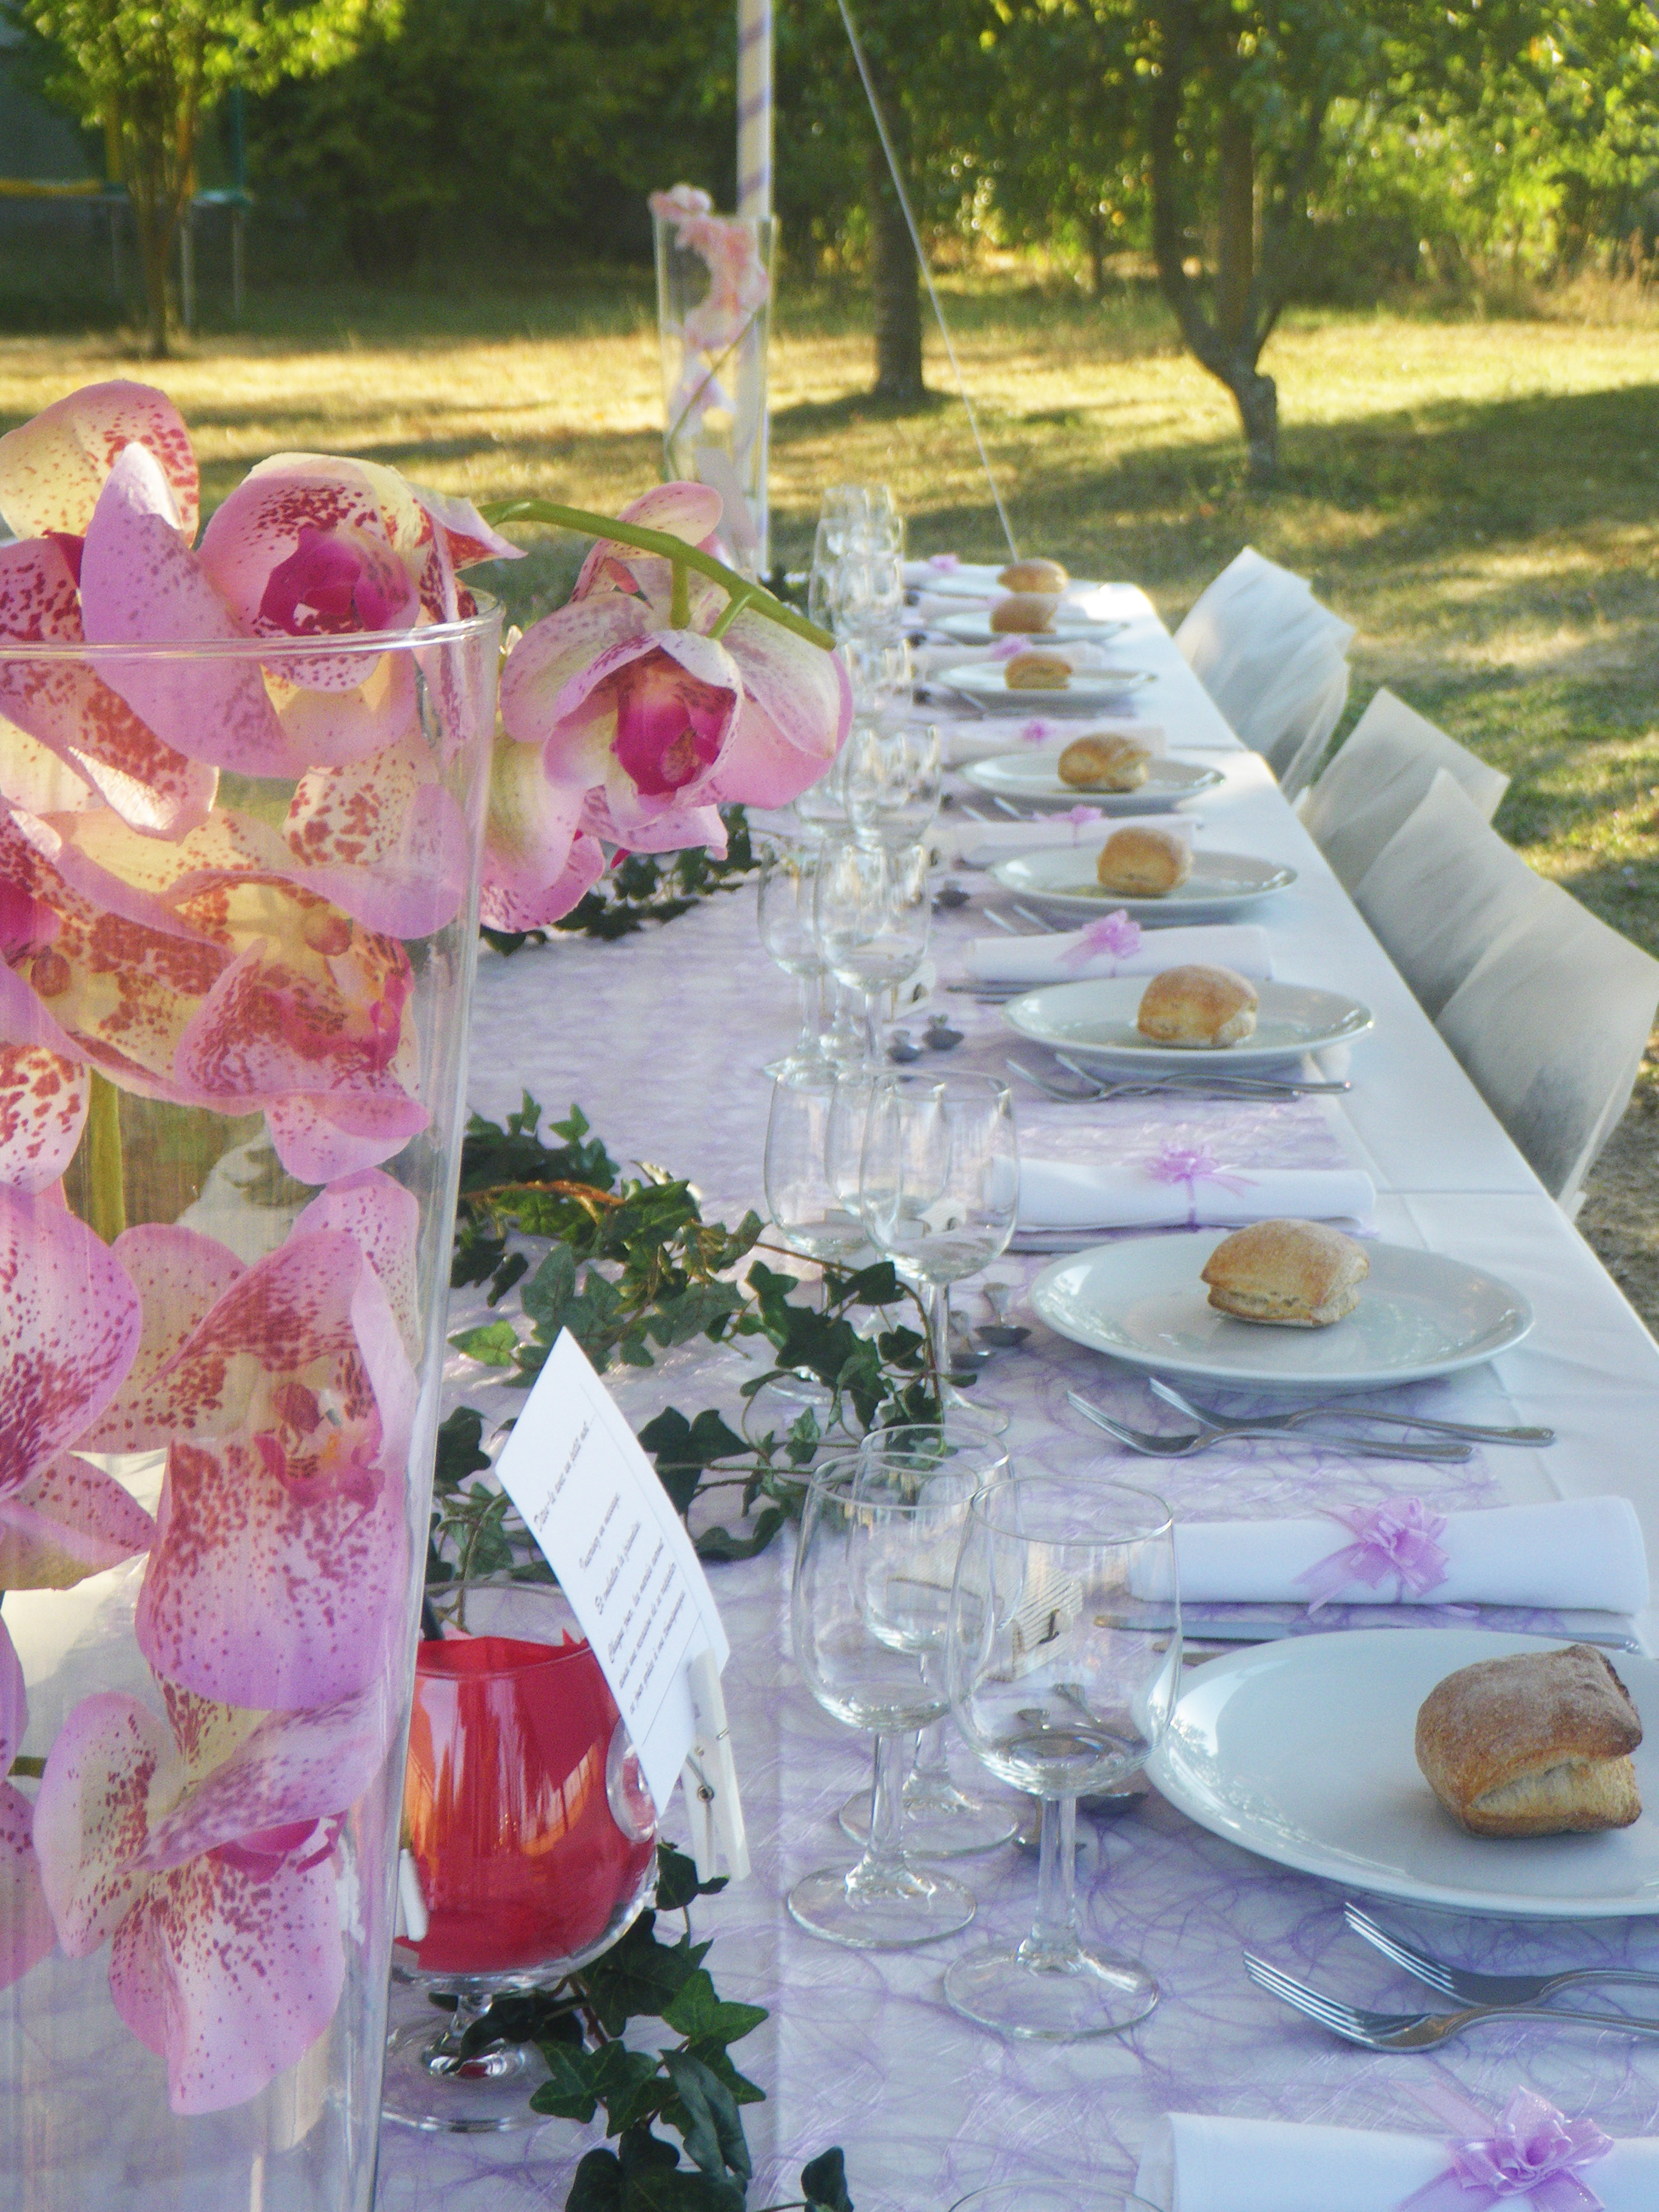 rikila-events-paris-location-vase50